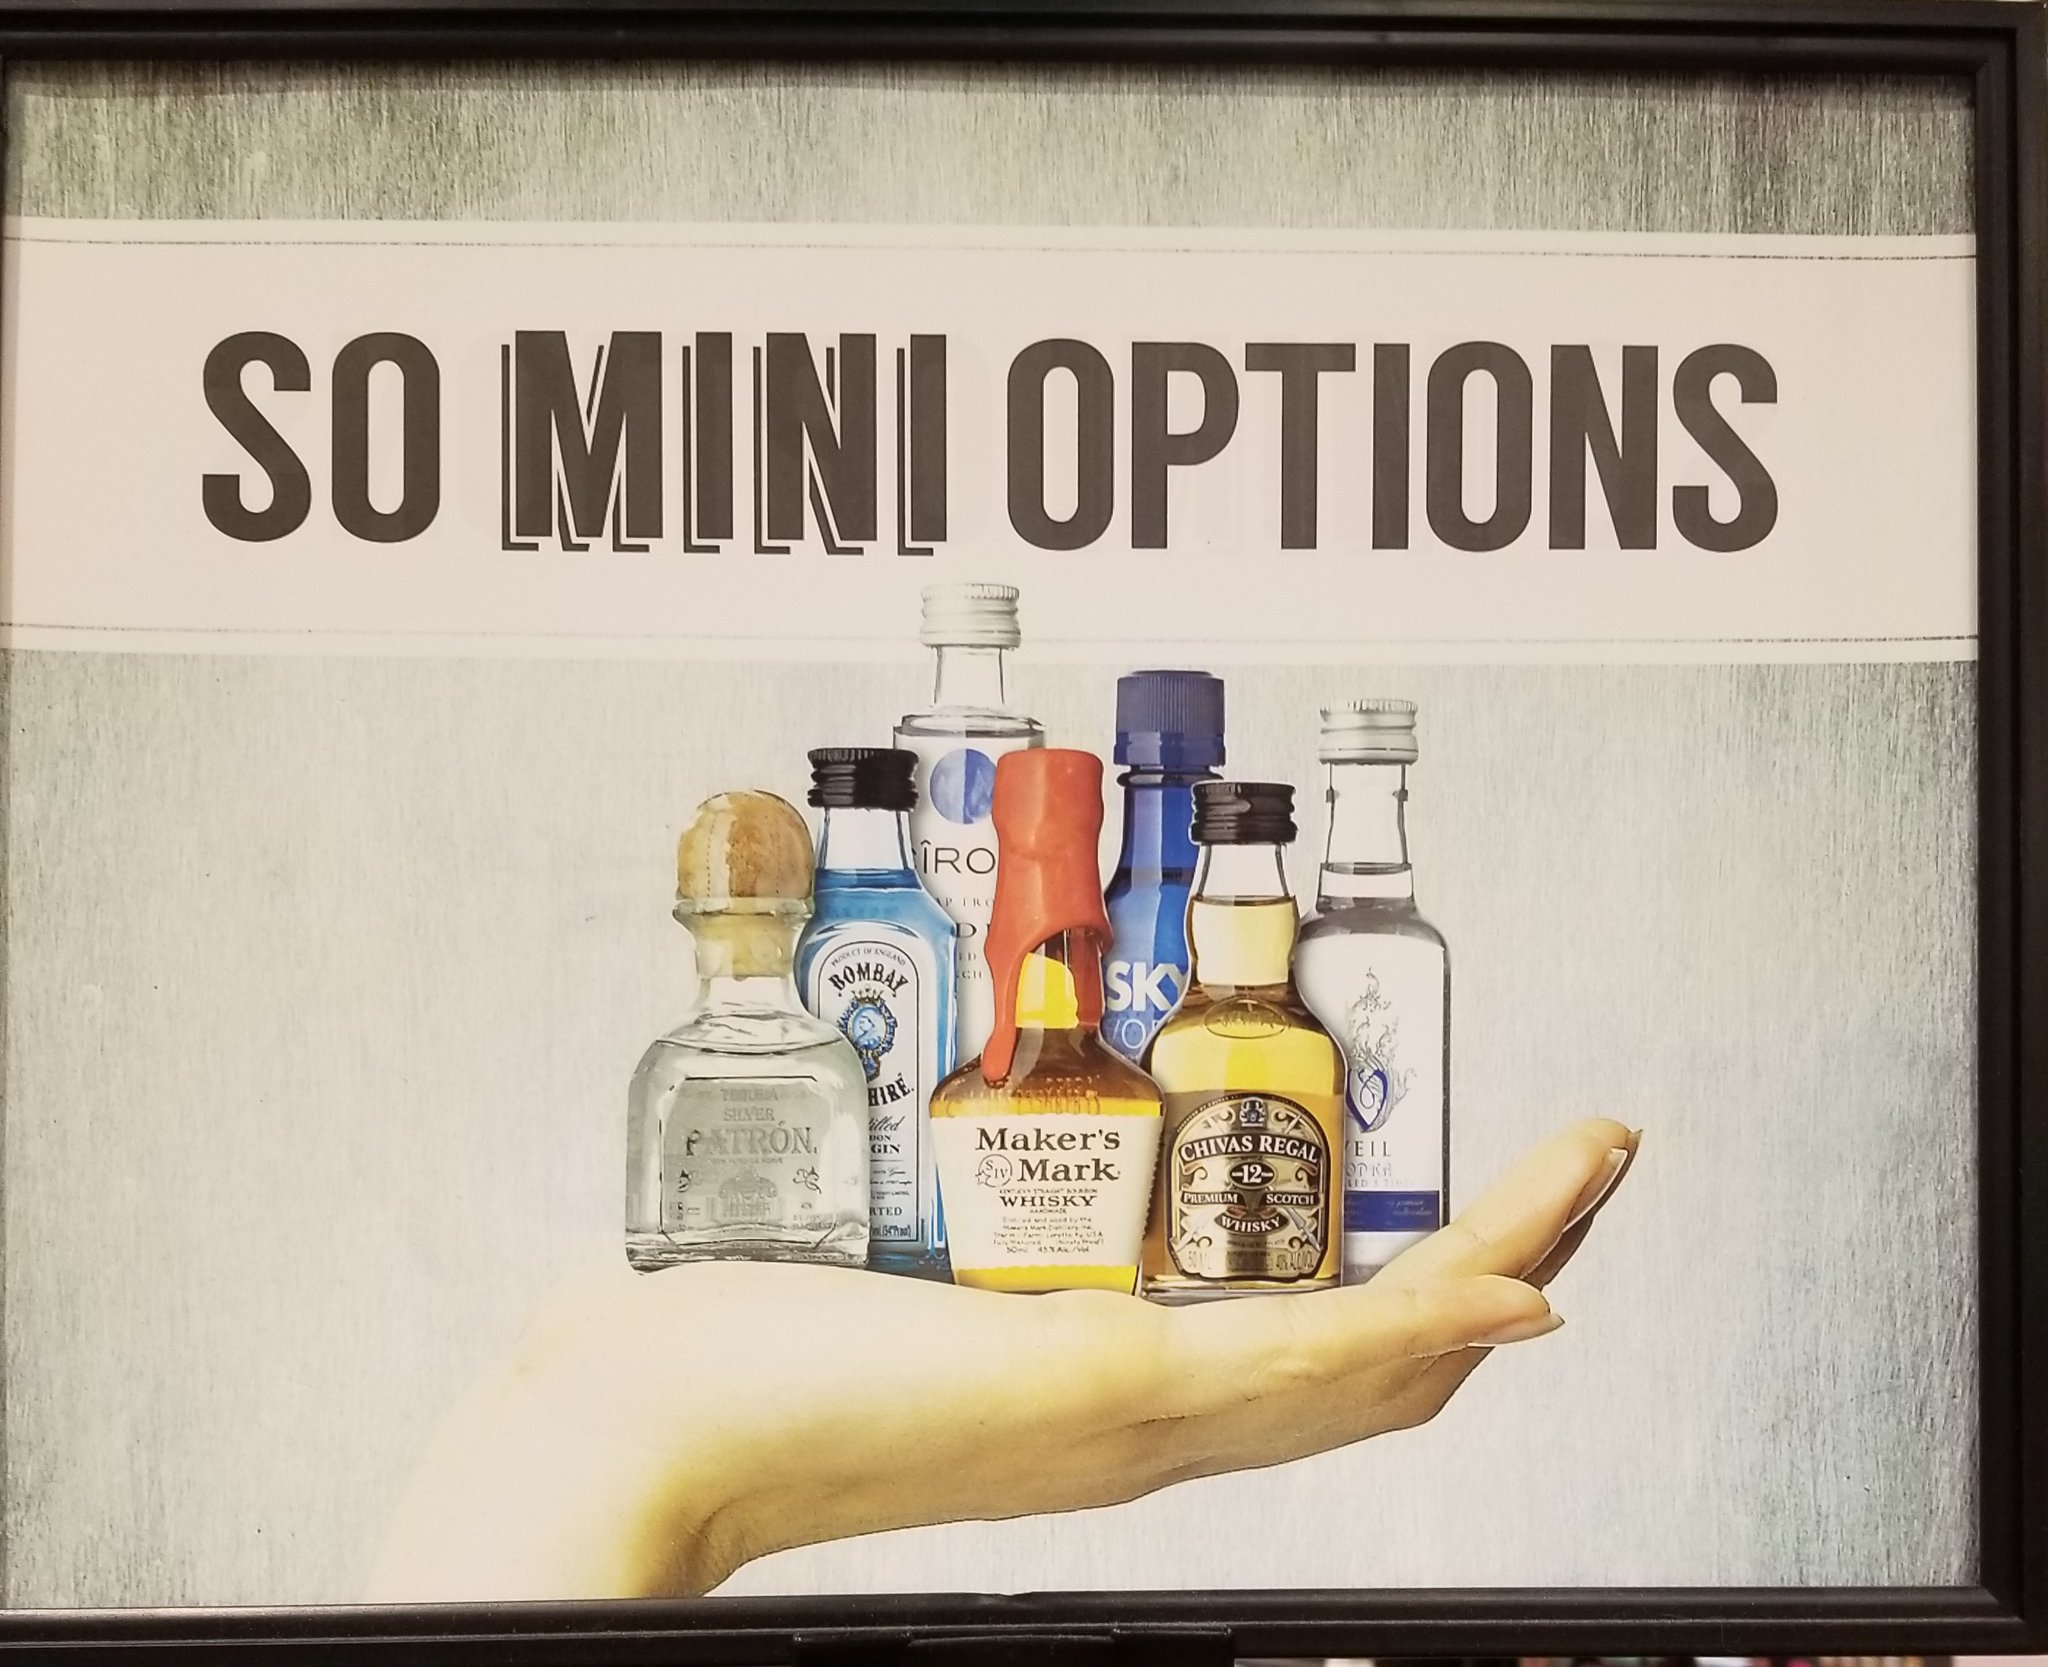 an image of a hand holding small liquors with the text saying So Mini Options